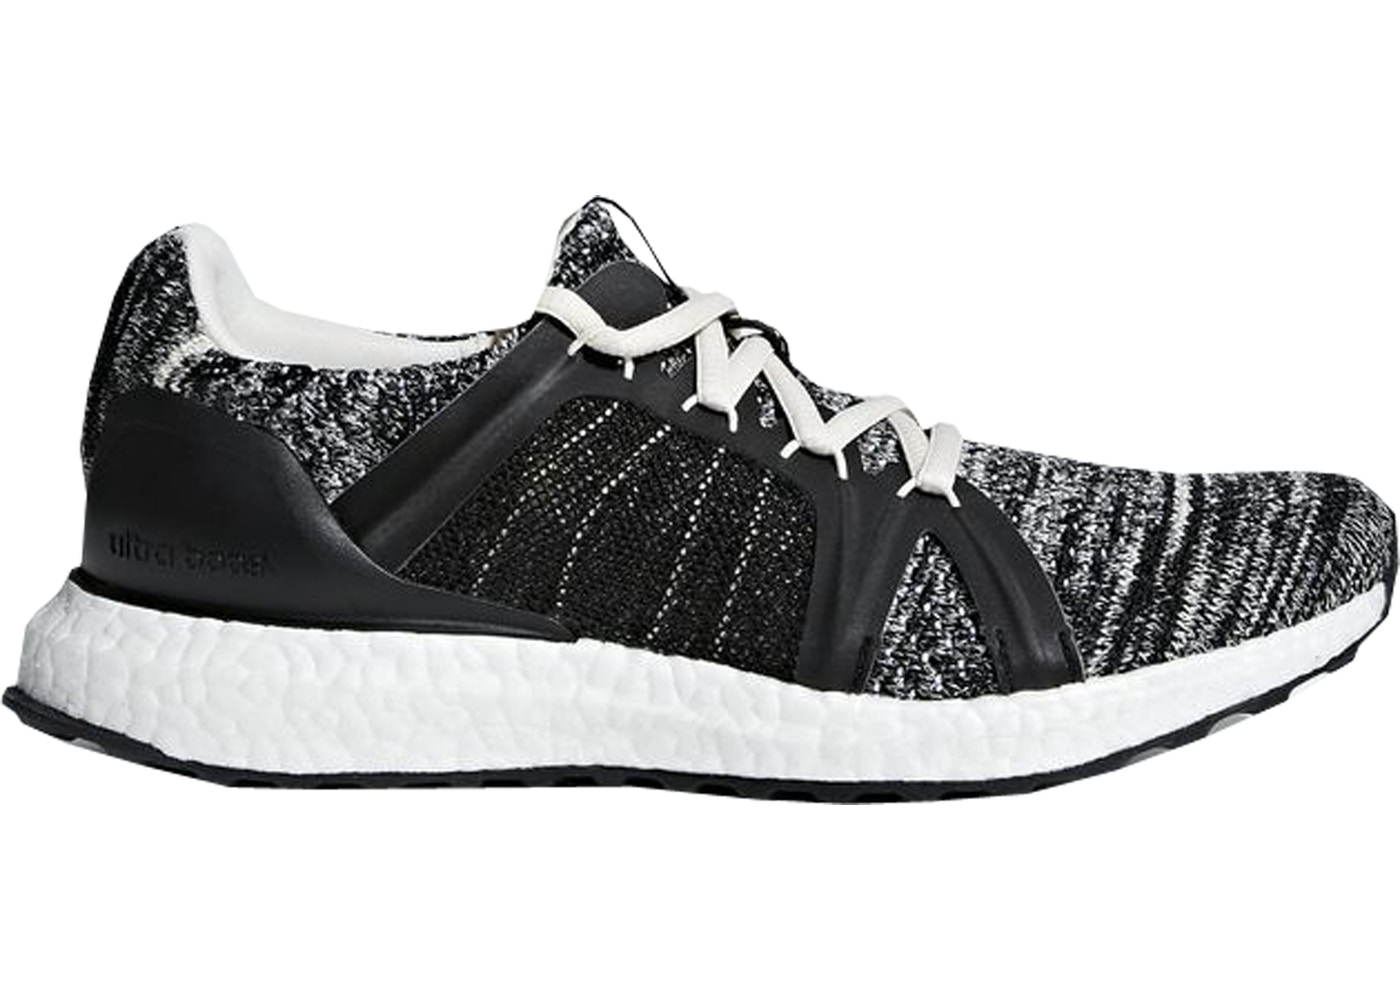 アディダス ADIDAS ウルトラ ブースト スニーカー 【 ULTRA BOOST PARLEY STELLA MCCARTNEY OREO W CORE BLACK CHALK WHITE 】 送料無料